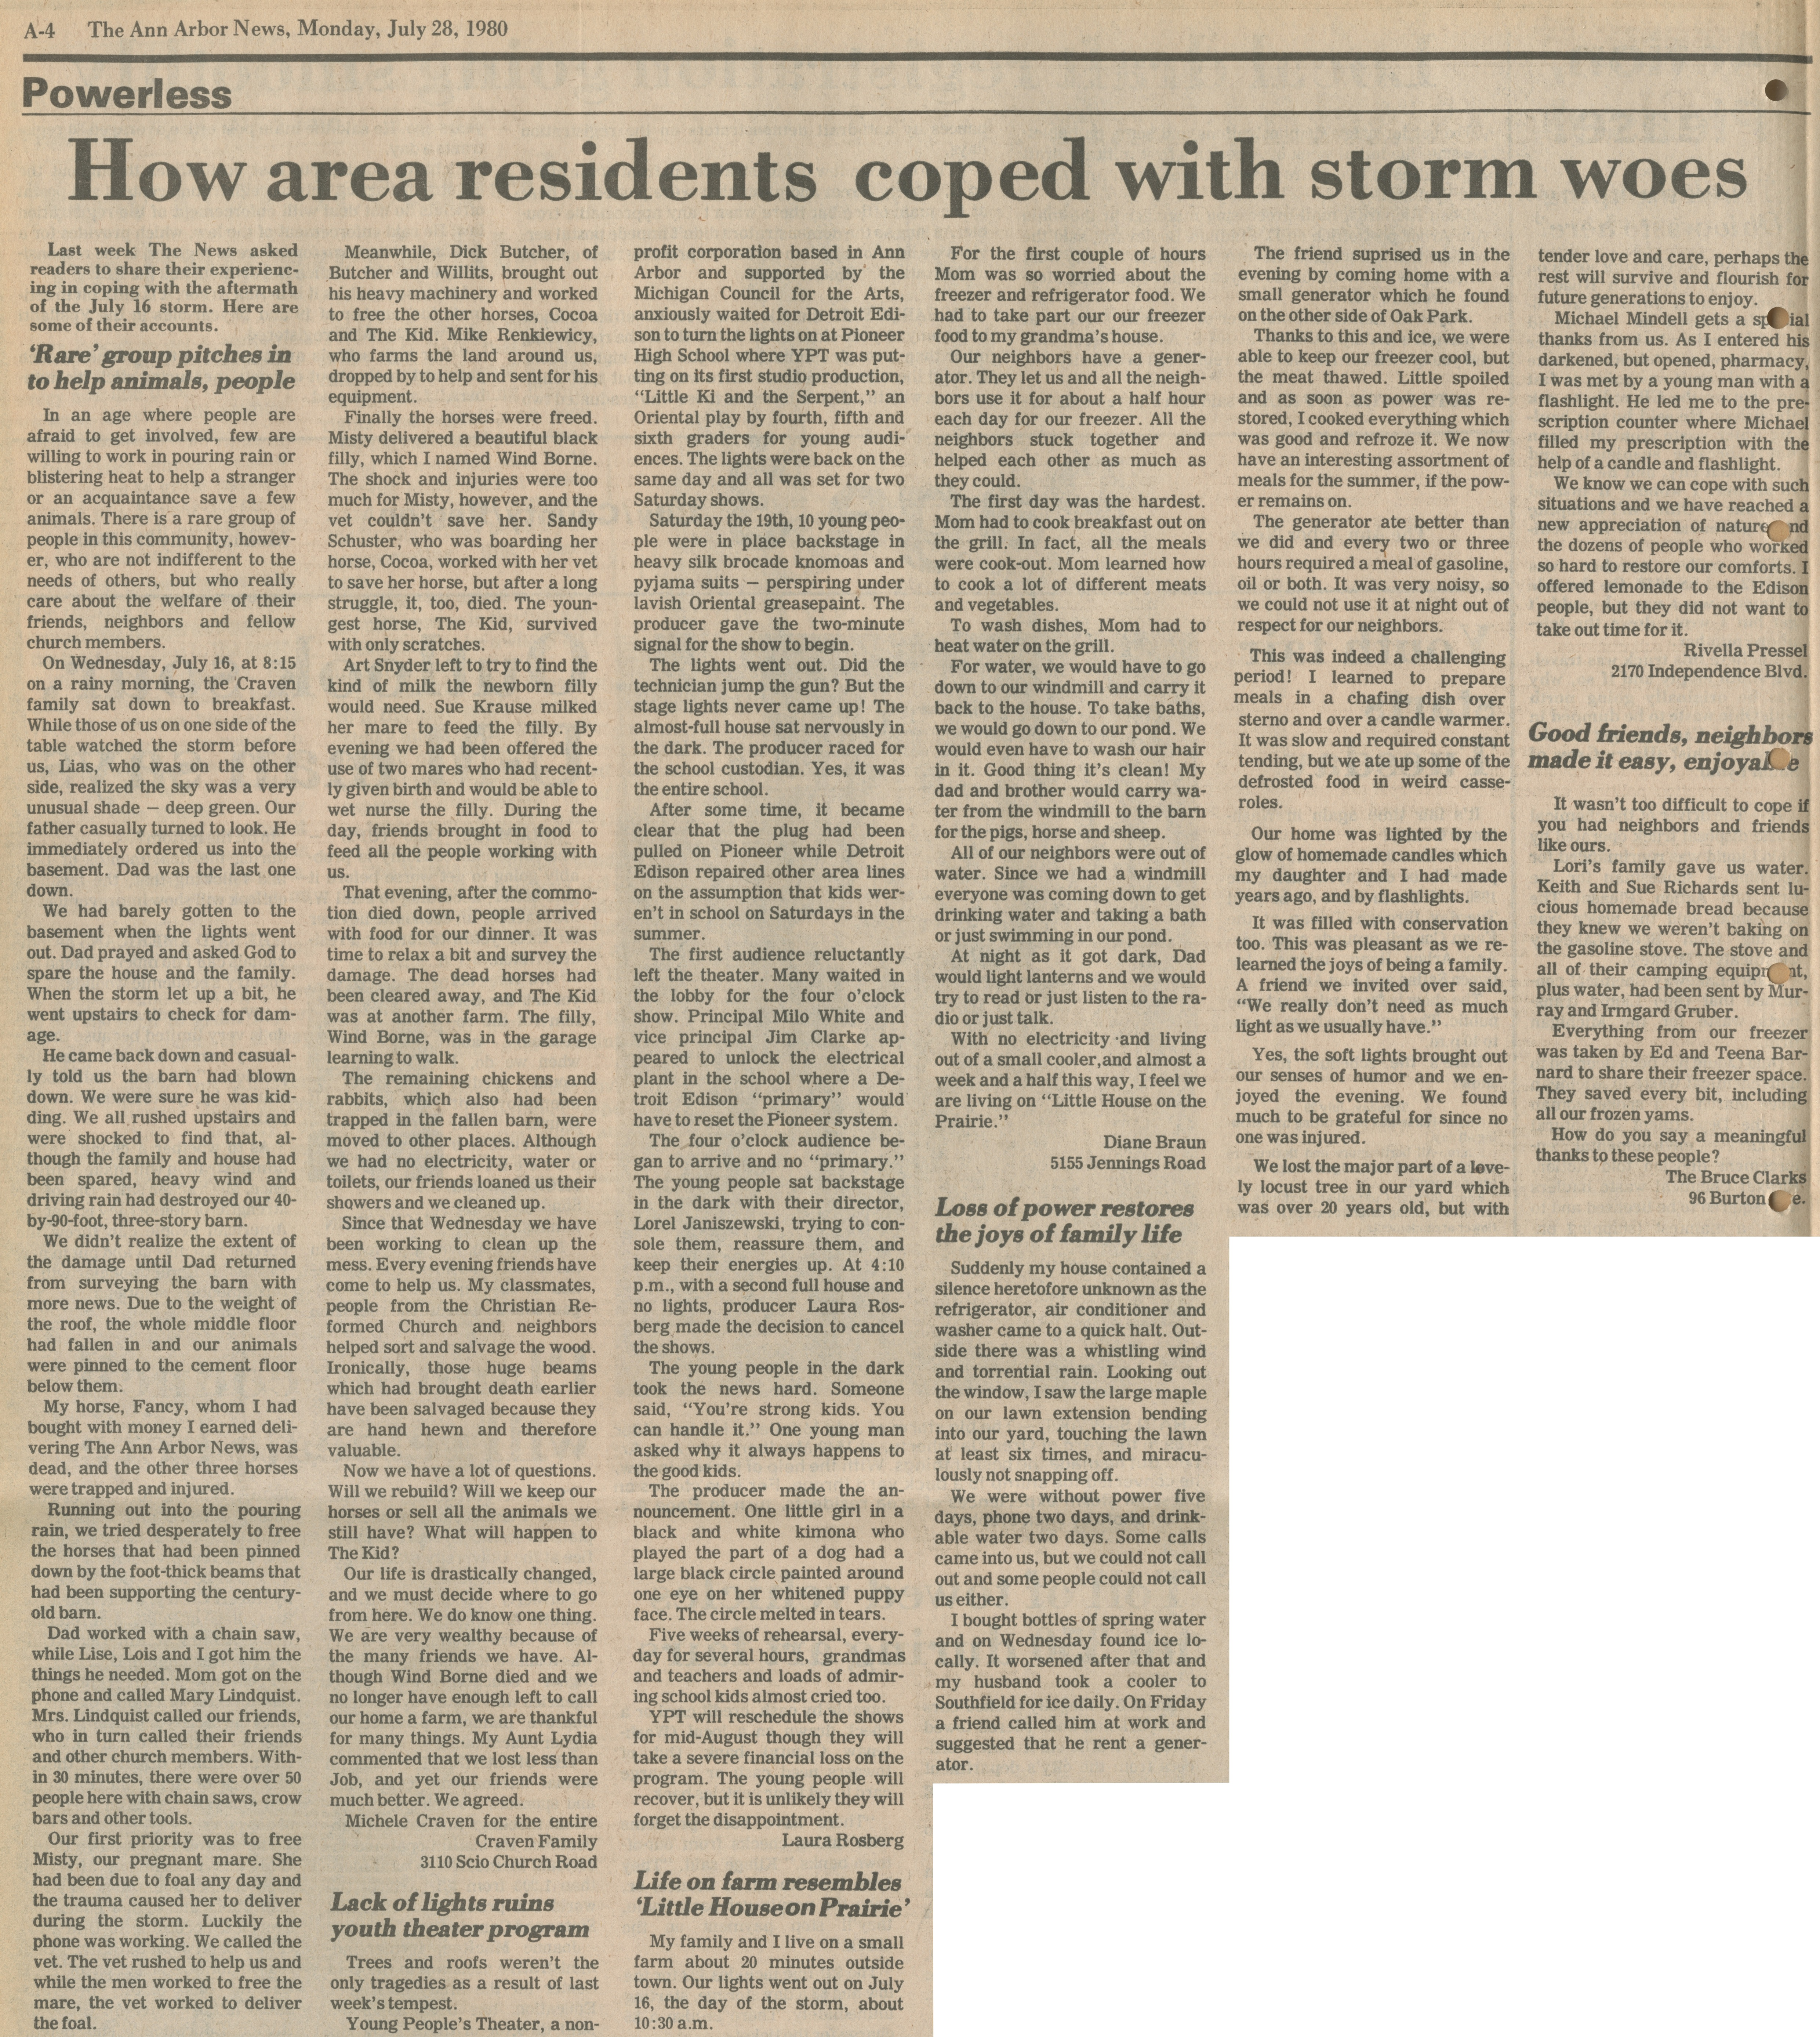 How area residents coped with storm woes image